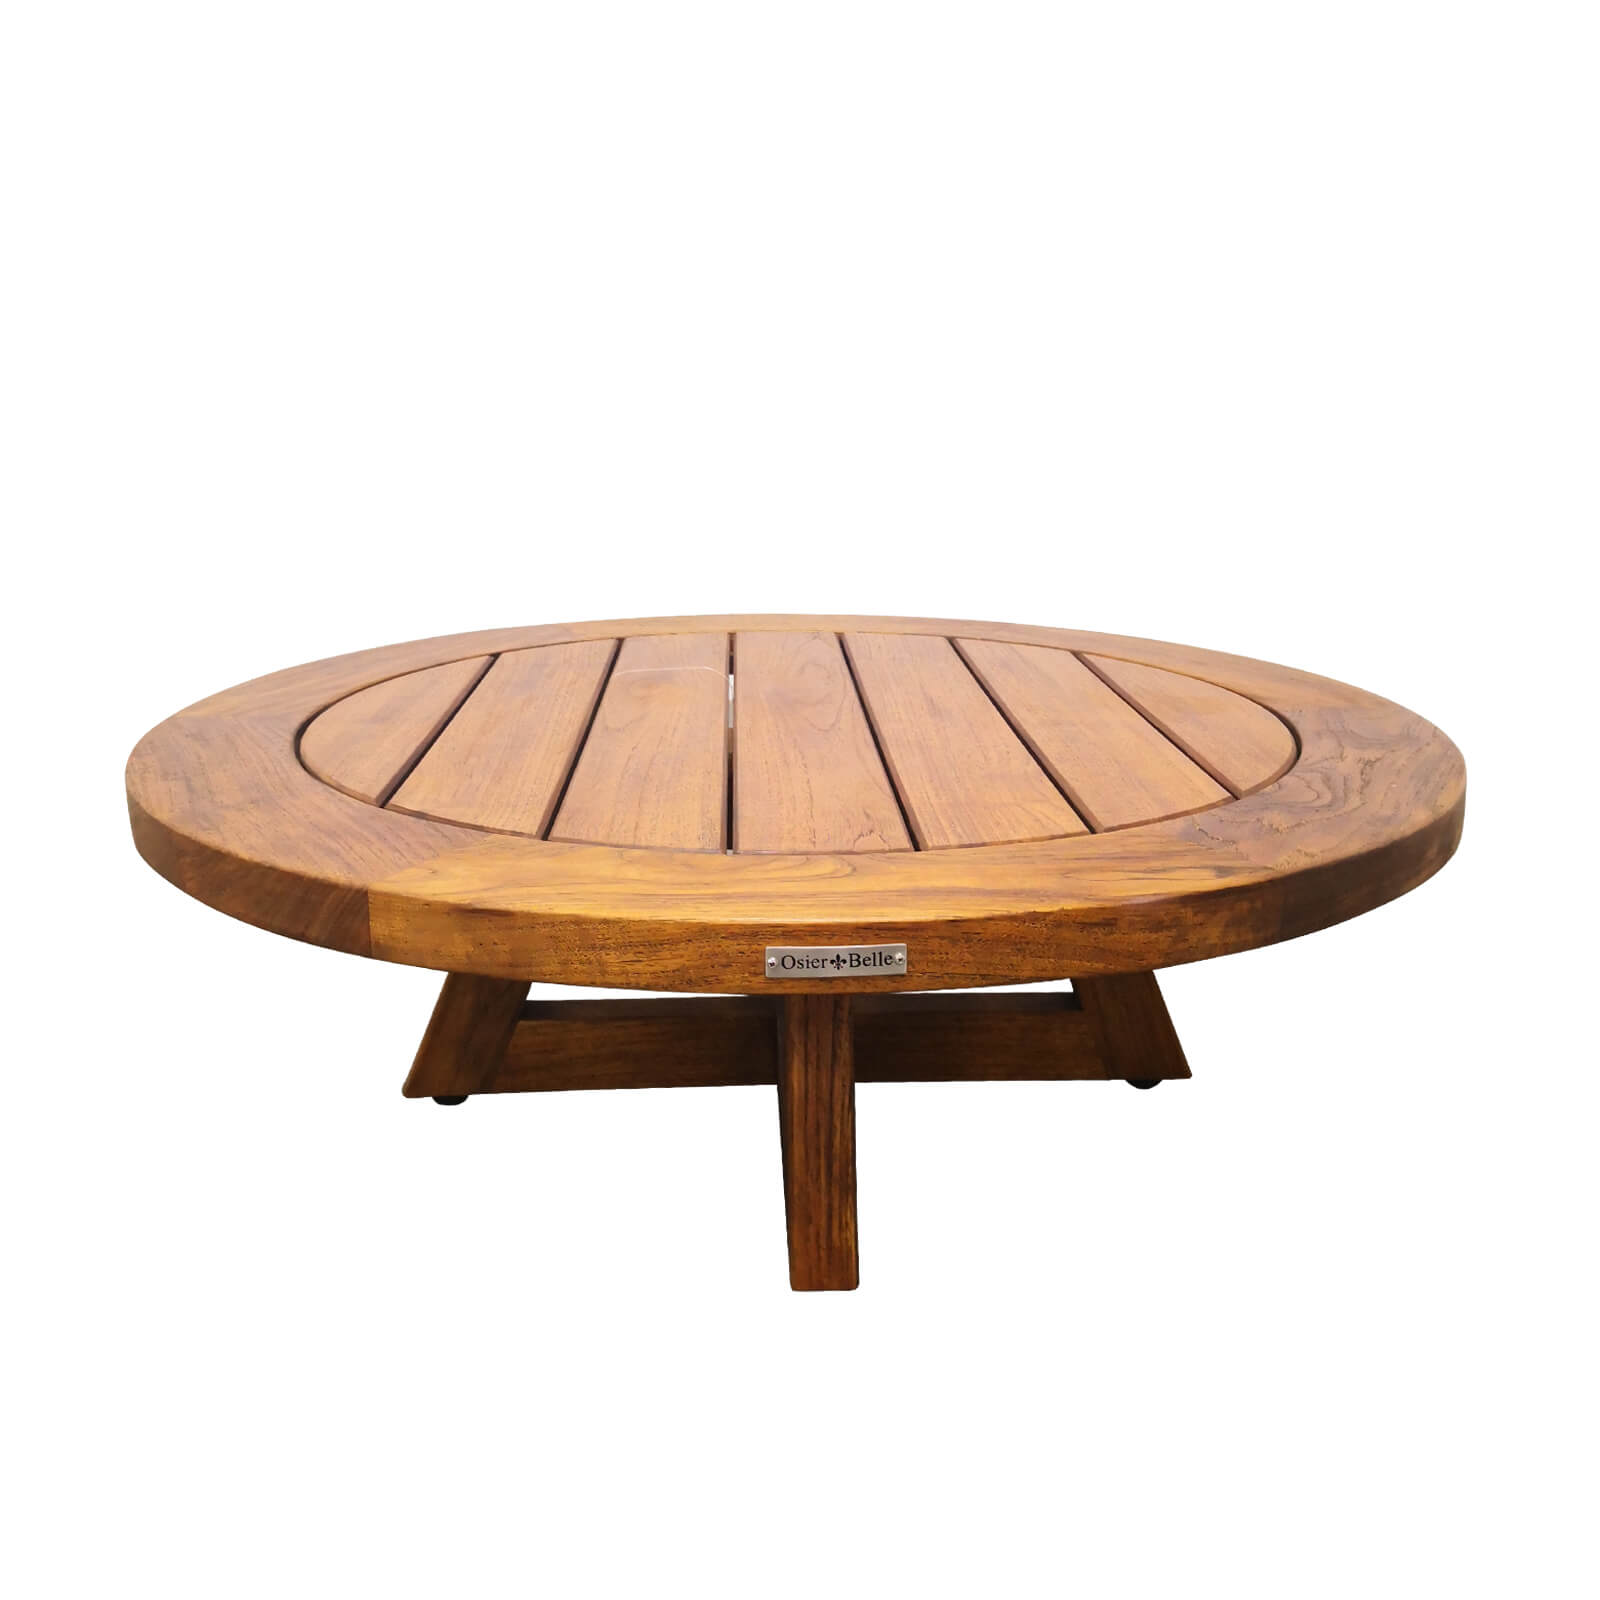 Two Design Lovers outdoor furniture teak coffee table Osier Belle 90cm